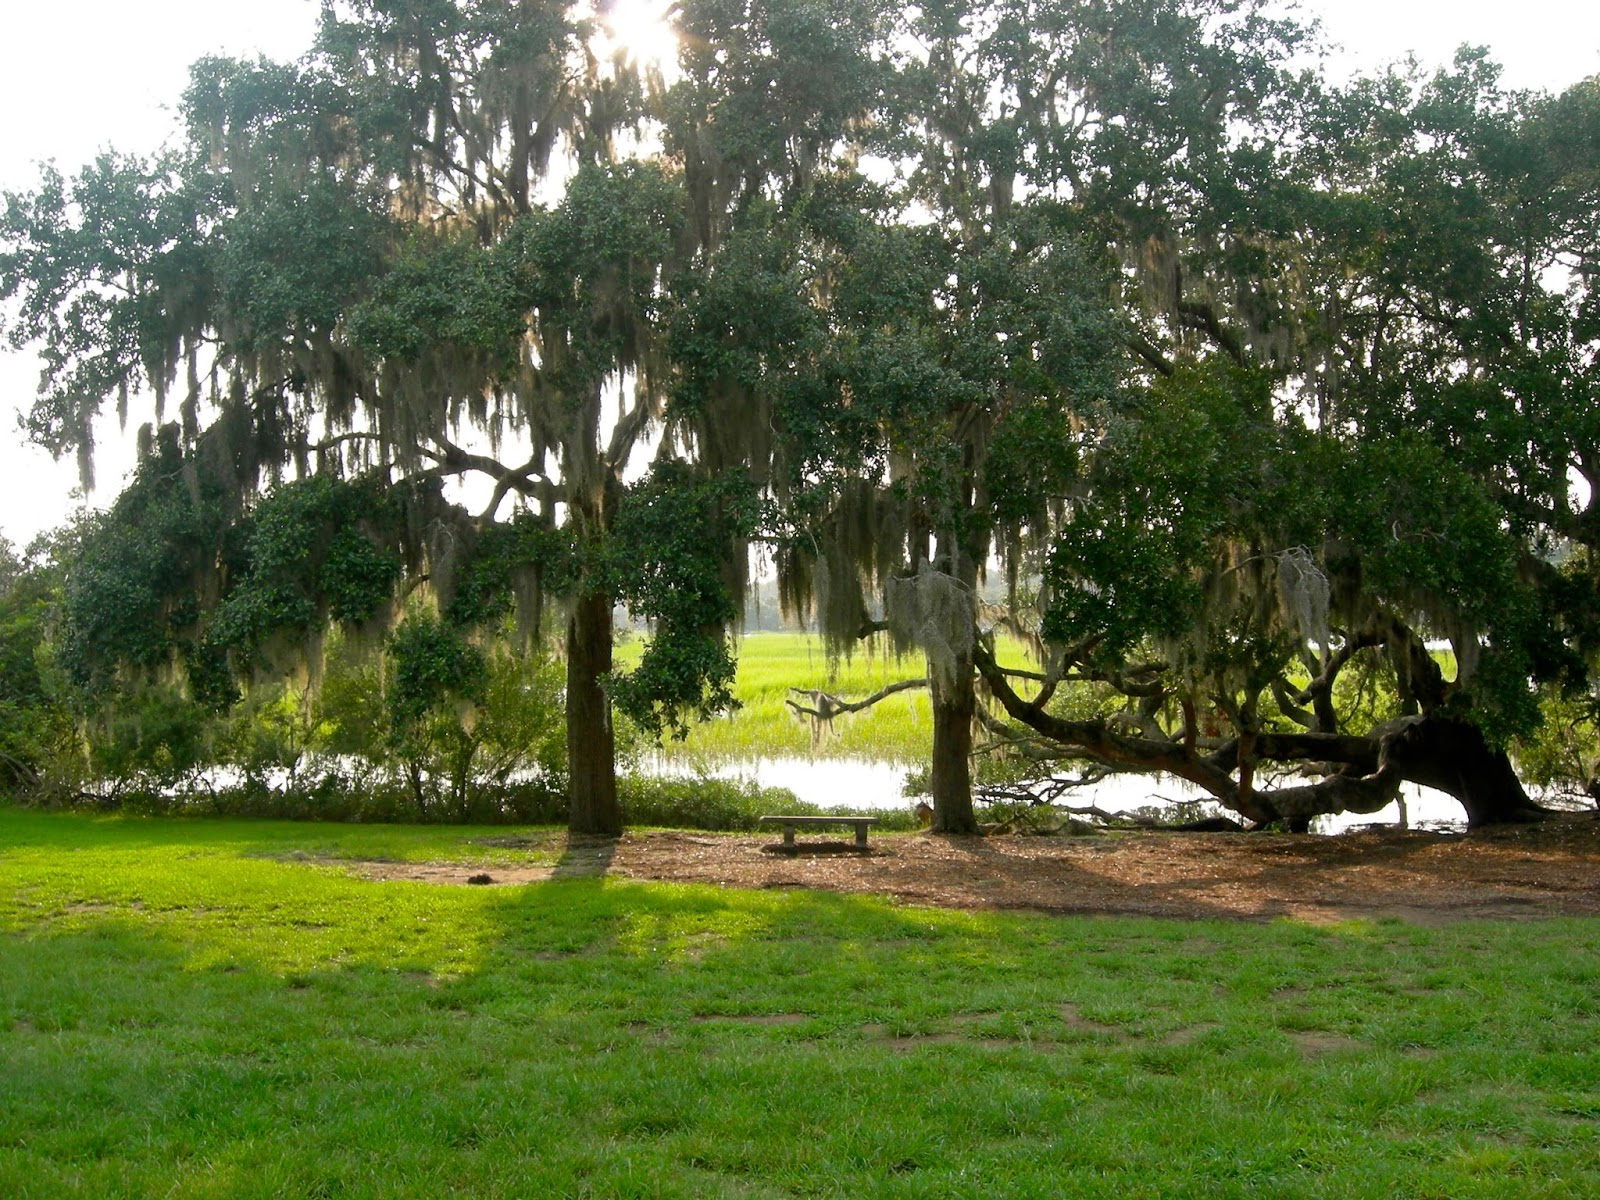 Boone Hall - Ouroutdoortravels.blogspot.com